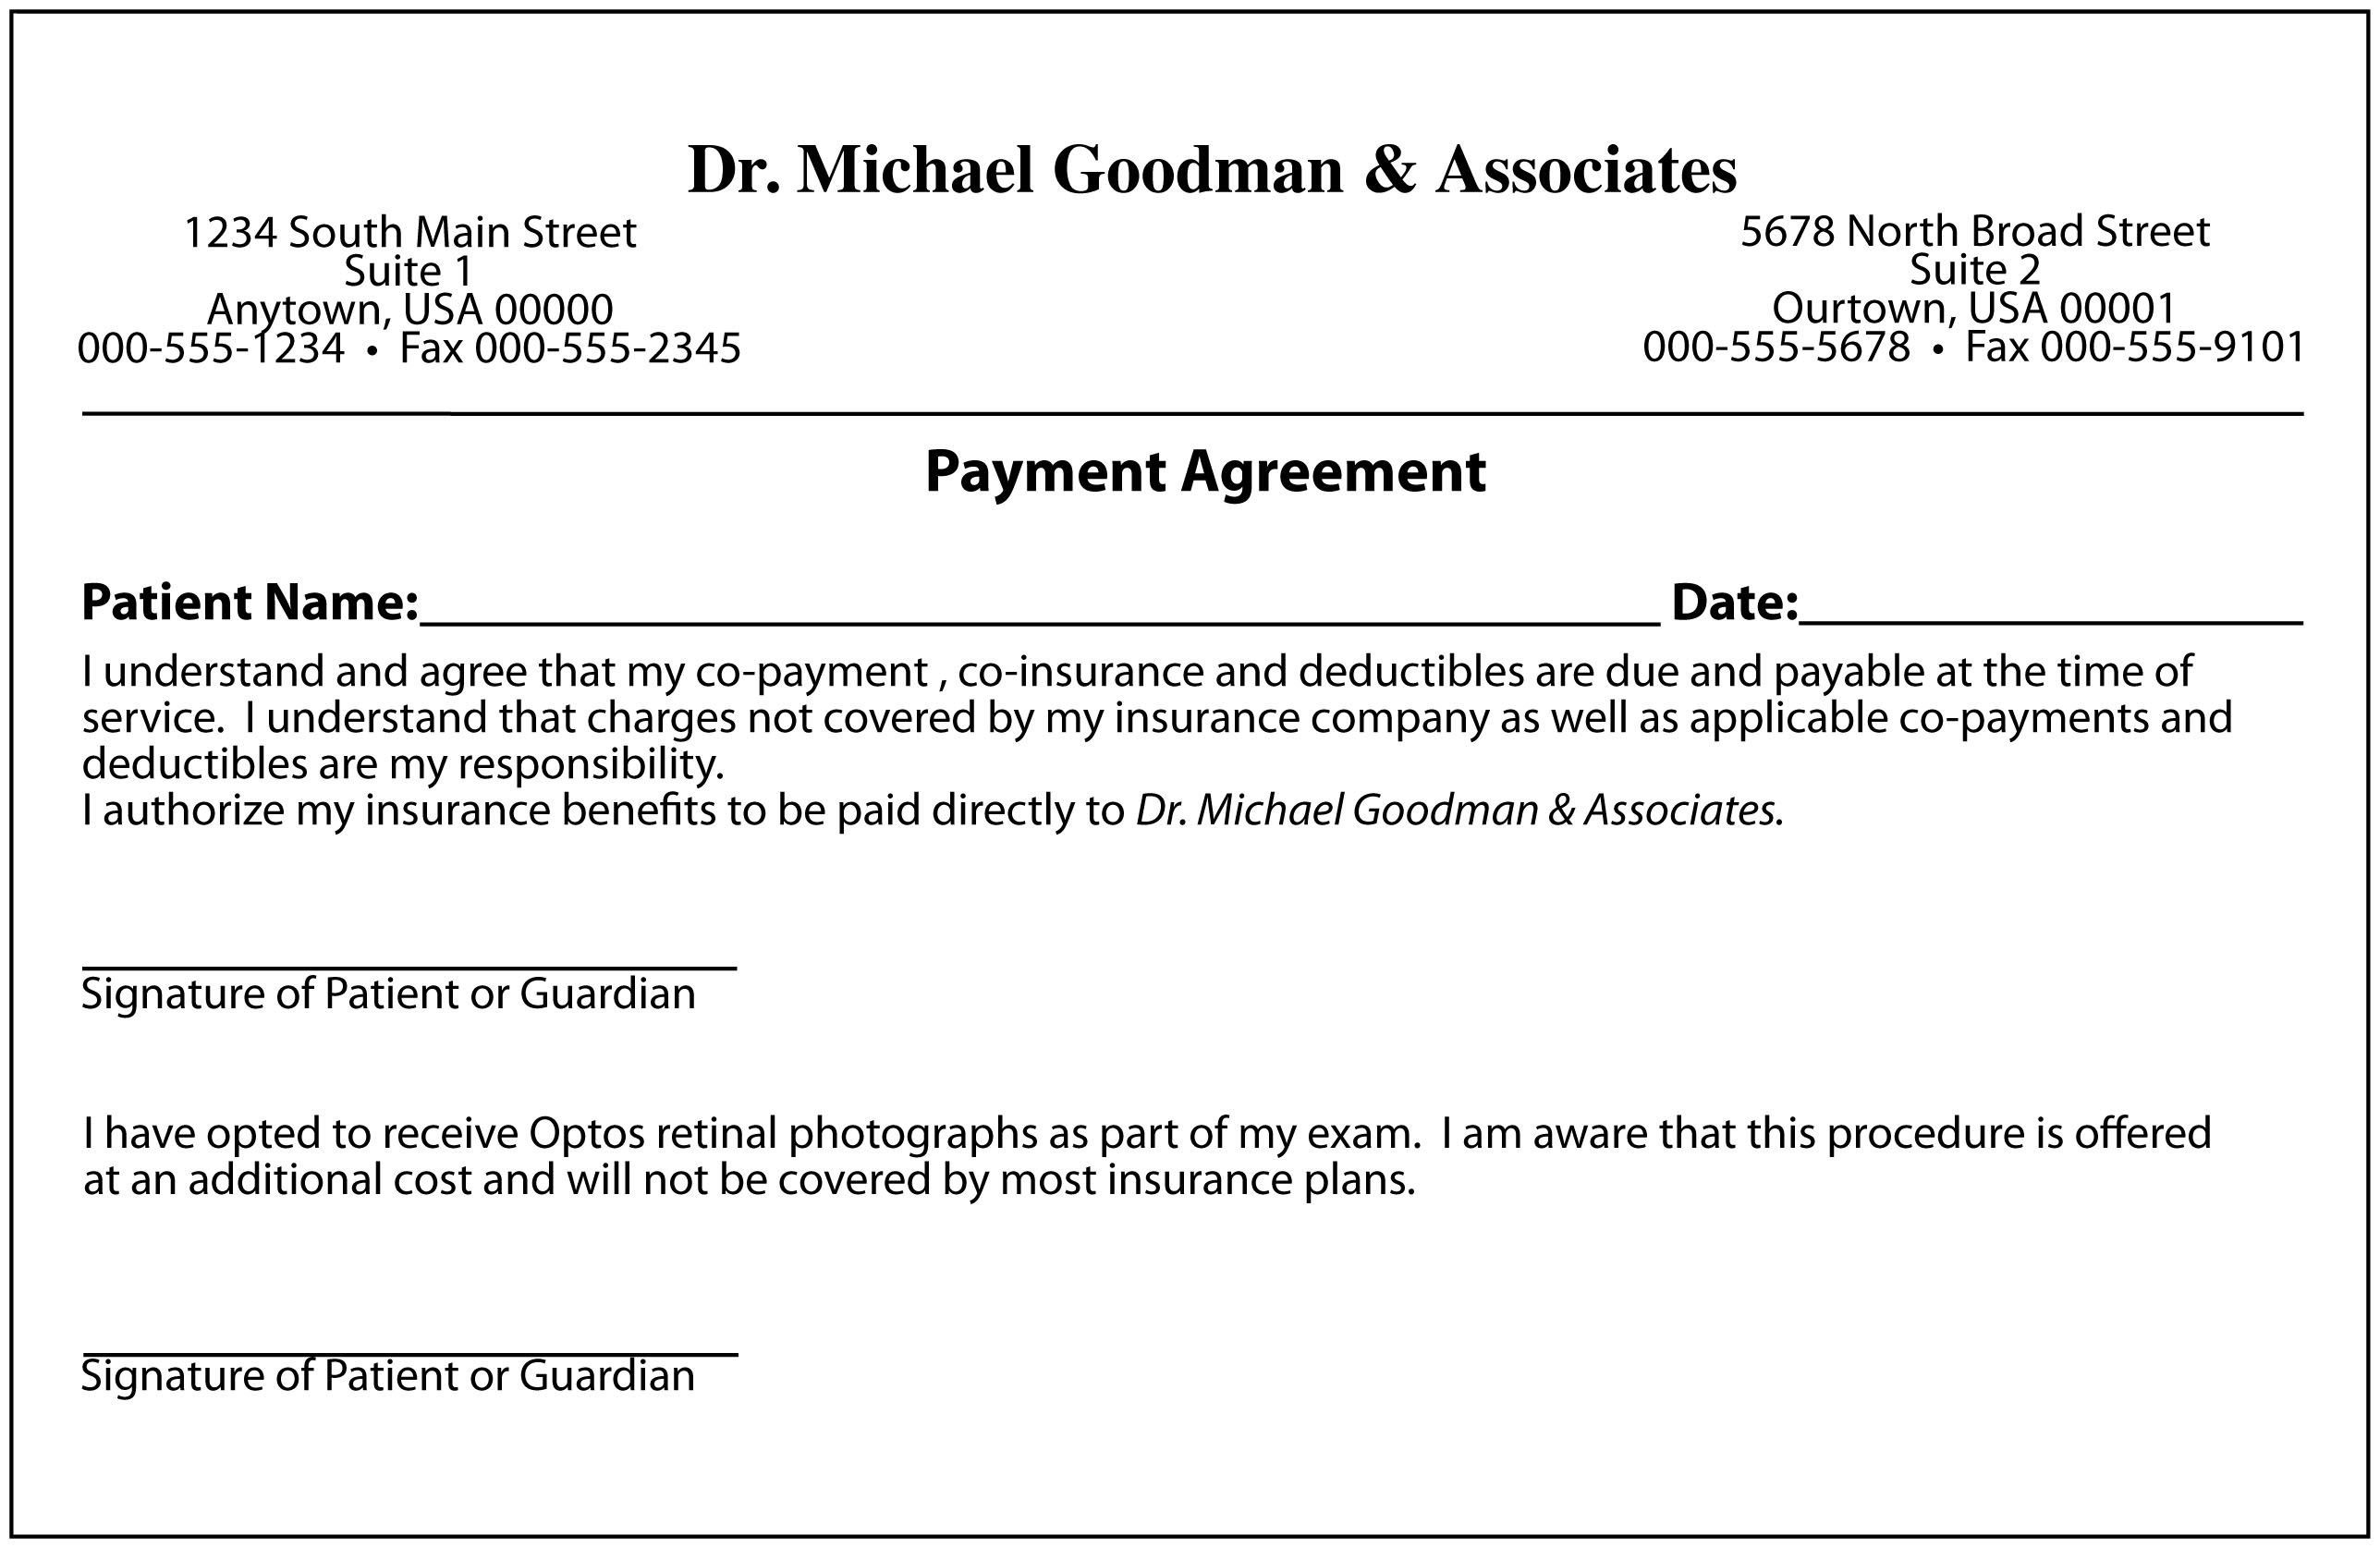 Notes Payable Agreement Installment Options Will Based On